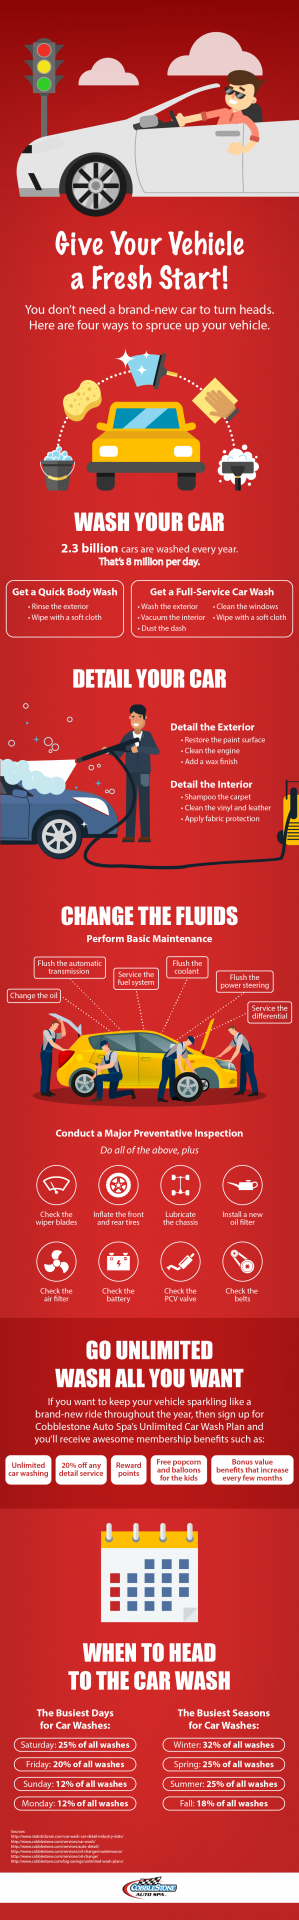 Give Your Vehicle a Fresh Start